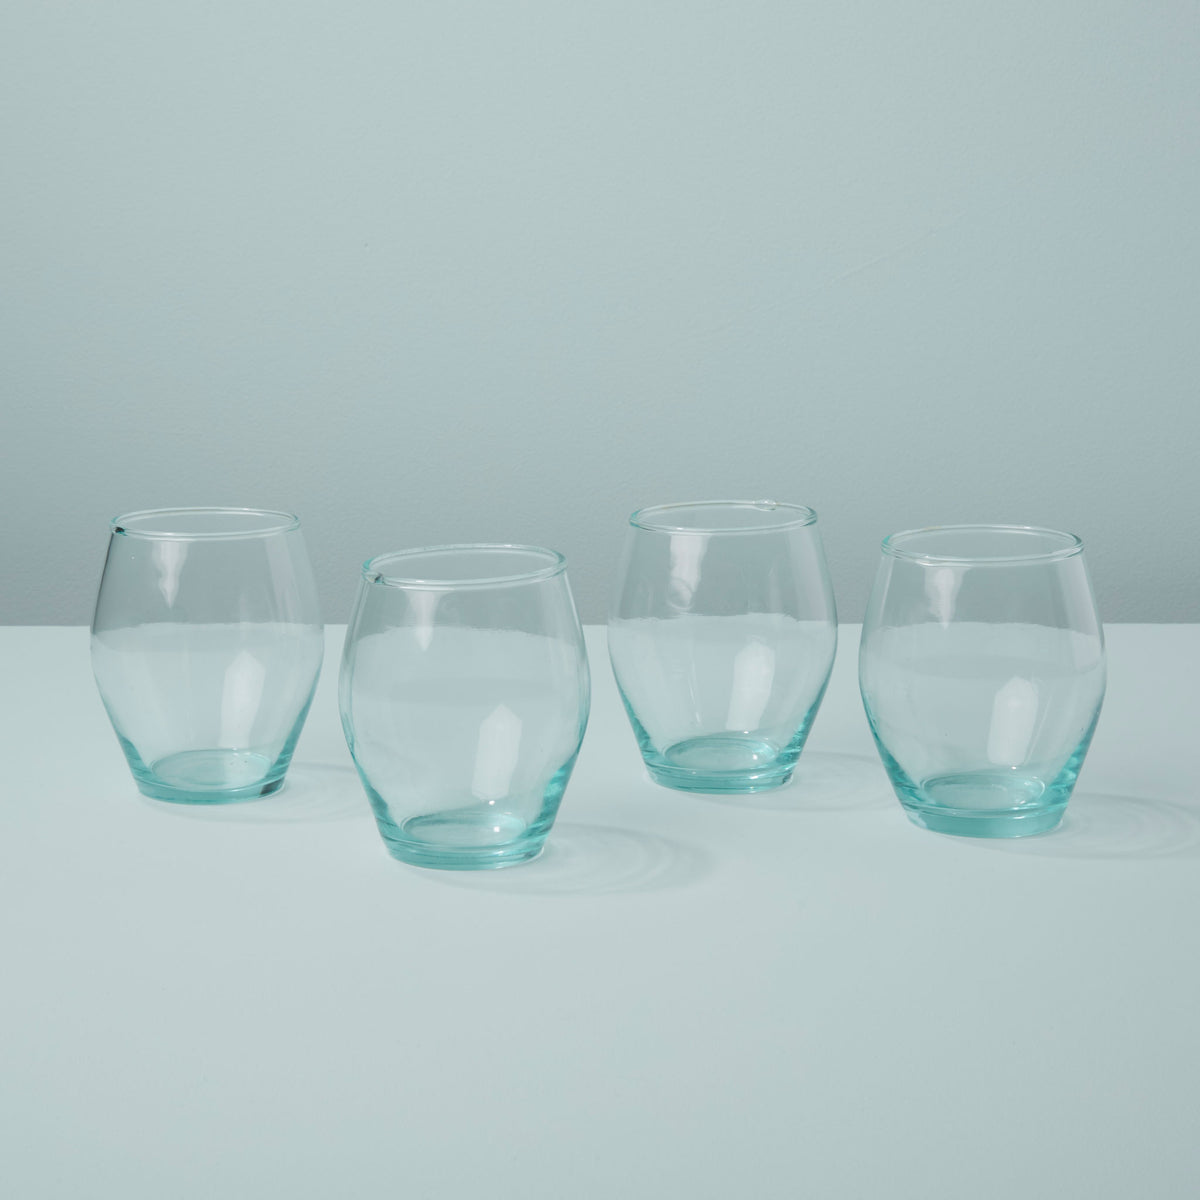 Premium Recycled Glass Stemless Tulip Set of 4